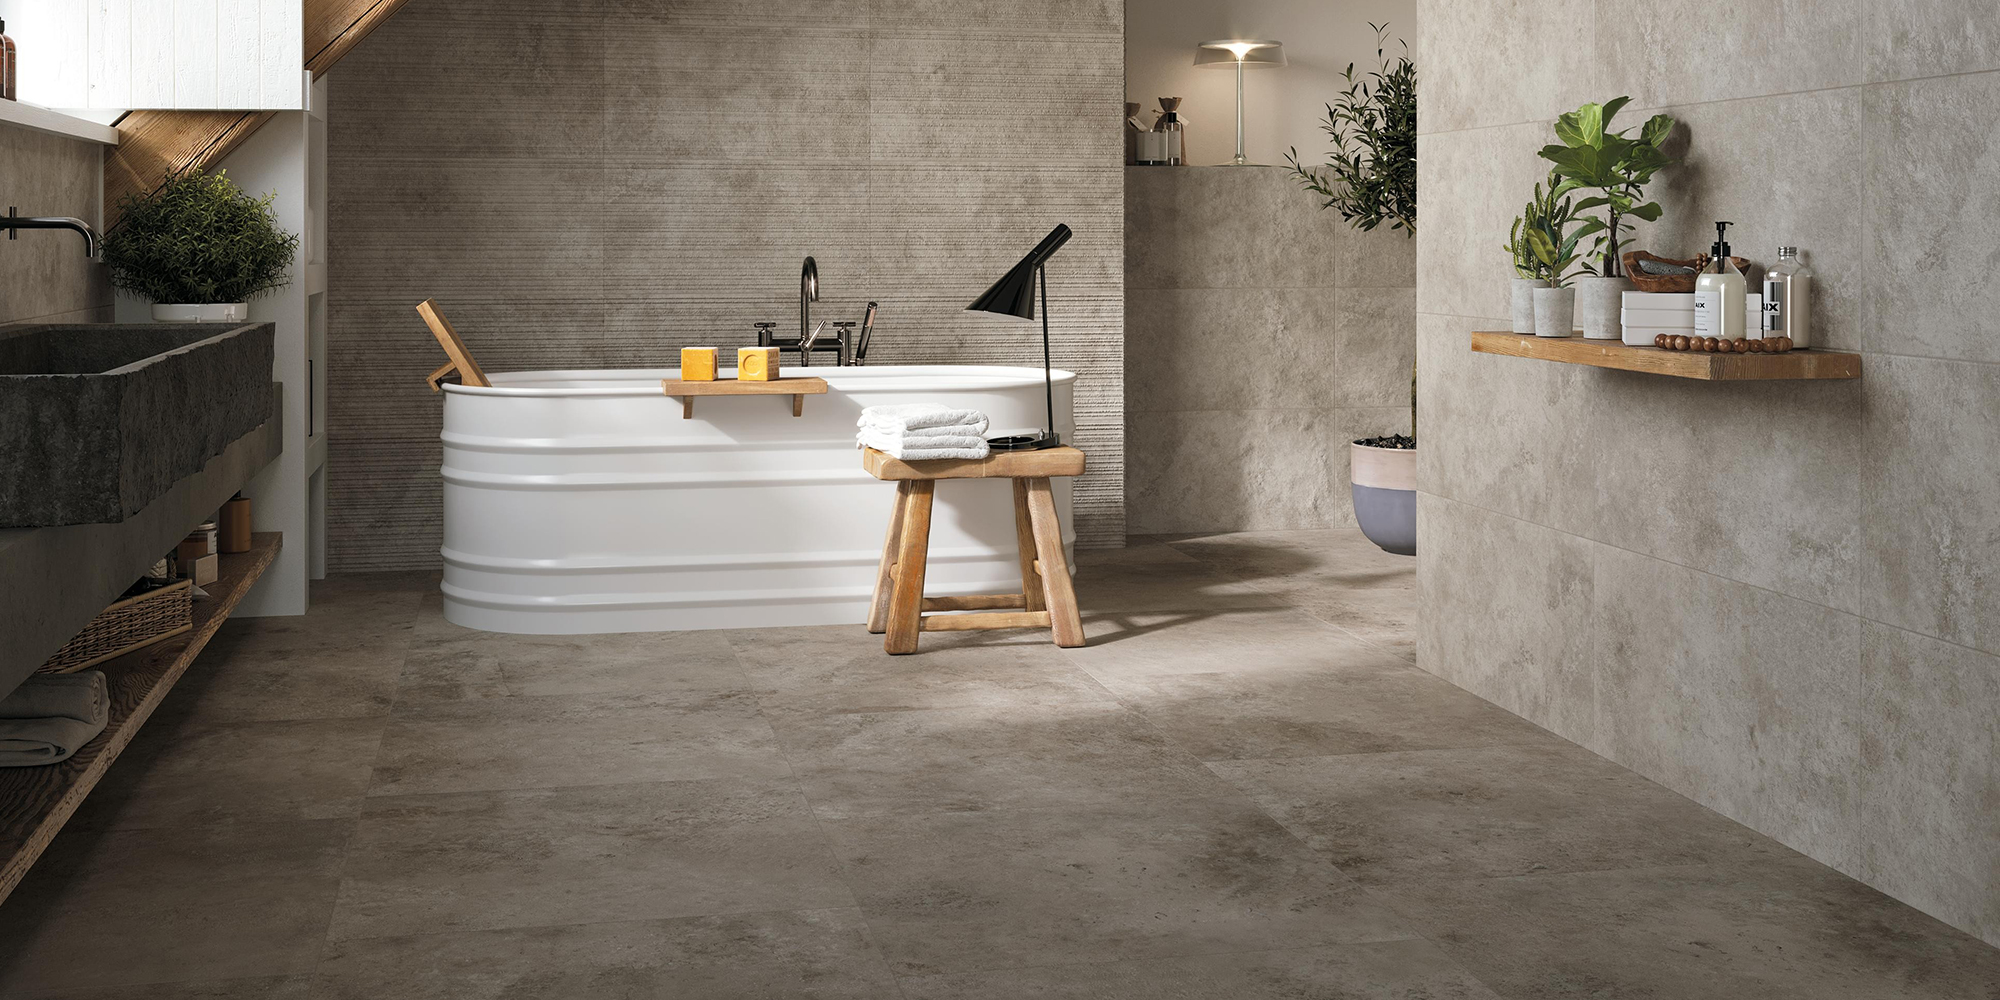 Aix 37.5x75. European ancient stone look porcelain tiles for residential and commercial, indoor and outdoor applications.